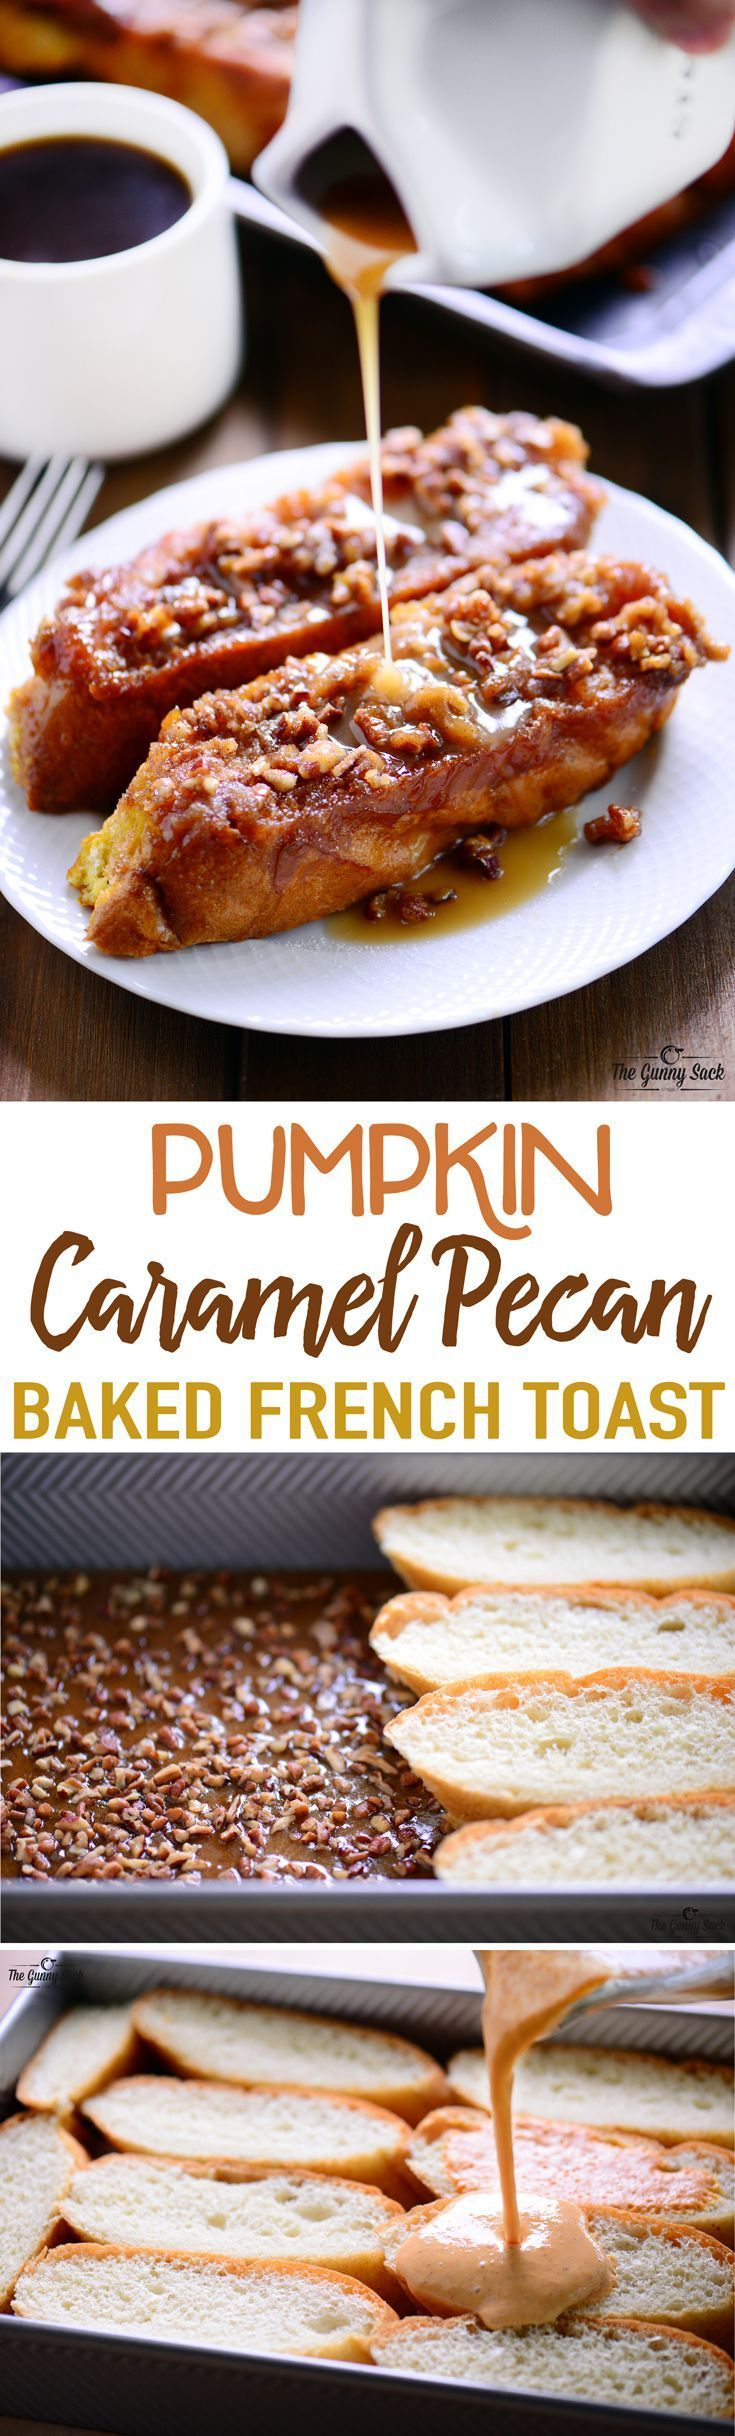 This Pumpkin Caramel Pecan Baked French Toast recipe is irresistibly good and is perfect for serving to overnight guests or at a holiday brunch!